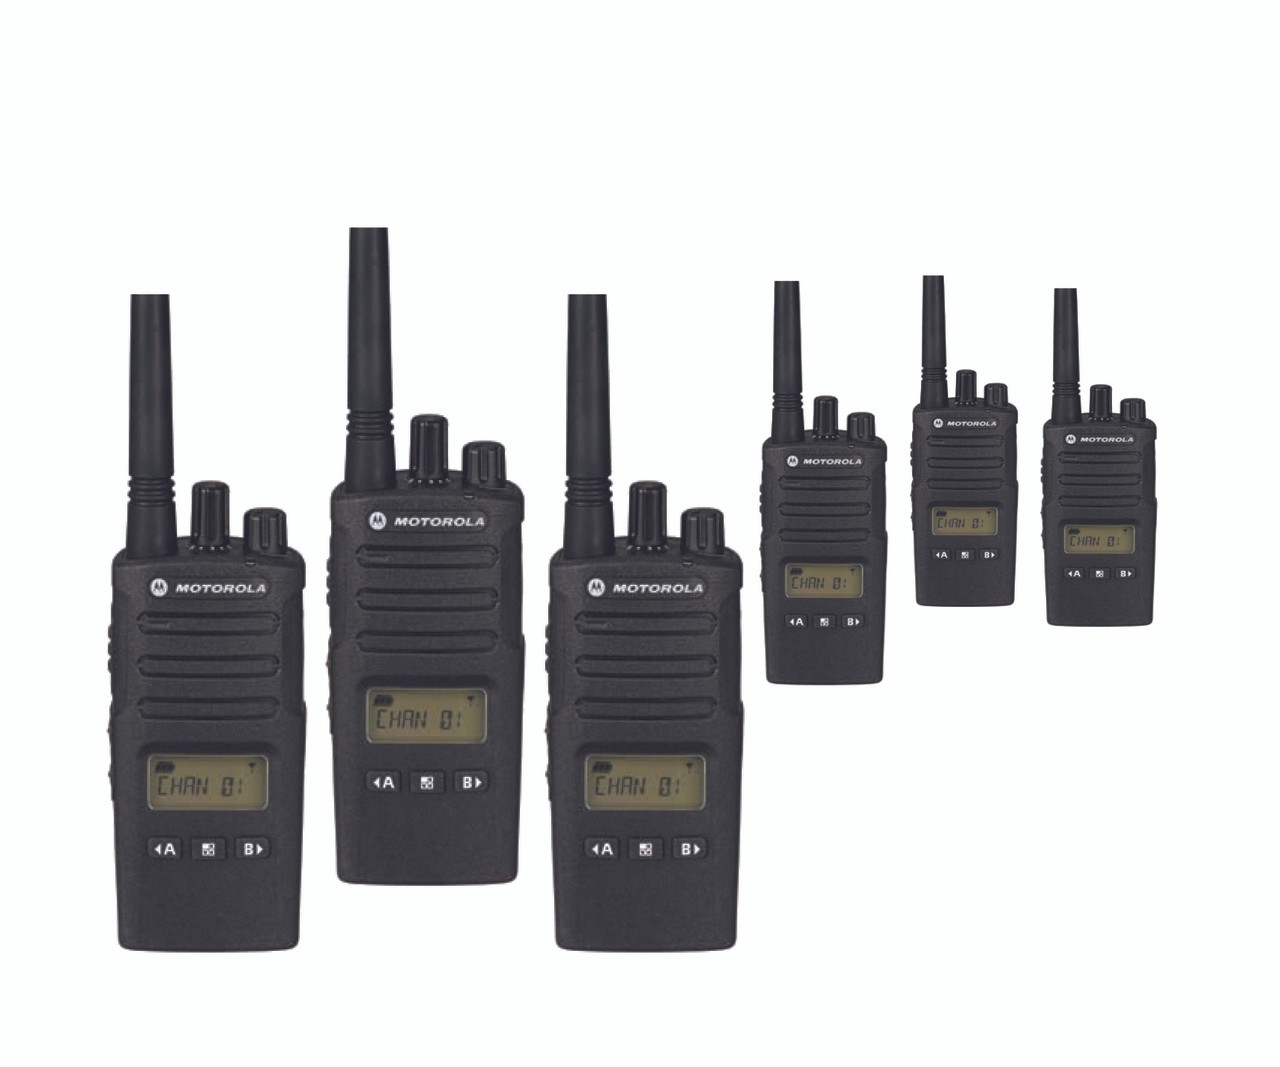 Motorola RMU2080d 2-Way Six Pack 8CH Display UHF Radios